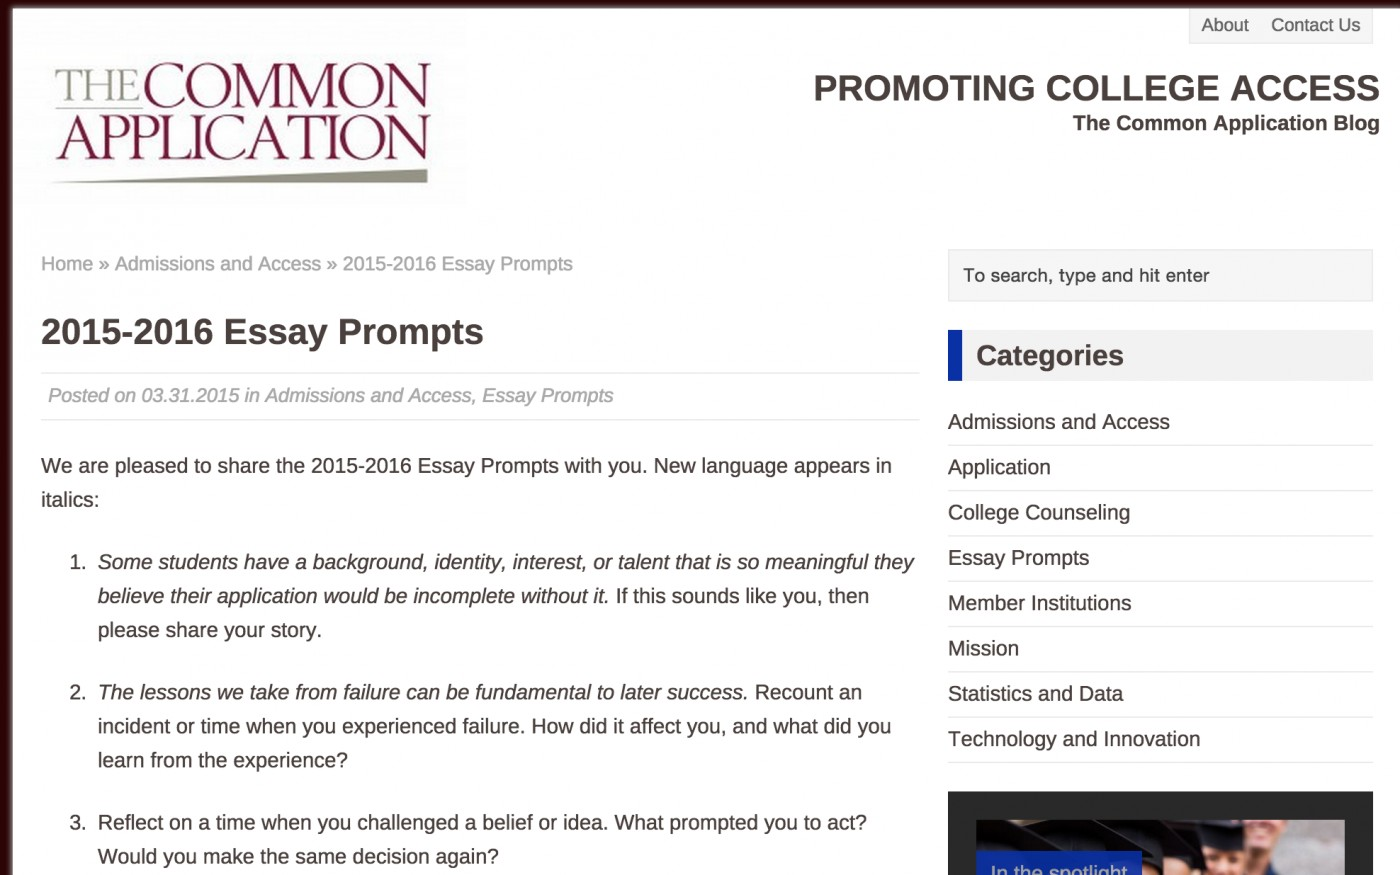 002 Essay Example Common App Prompts Screen Shot At Formidable Examples Prompt 1 Transfer 2017 2015 1400